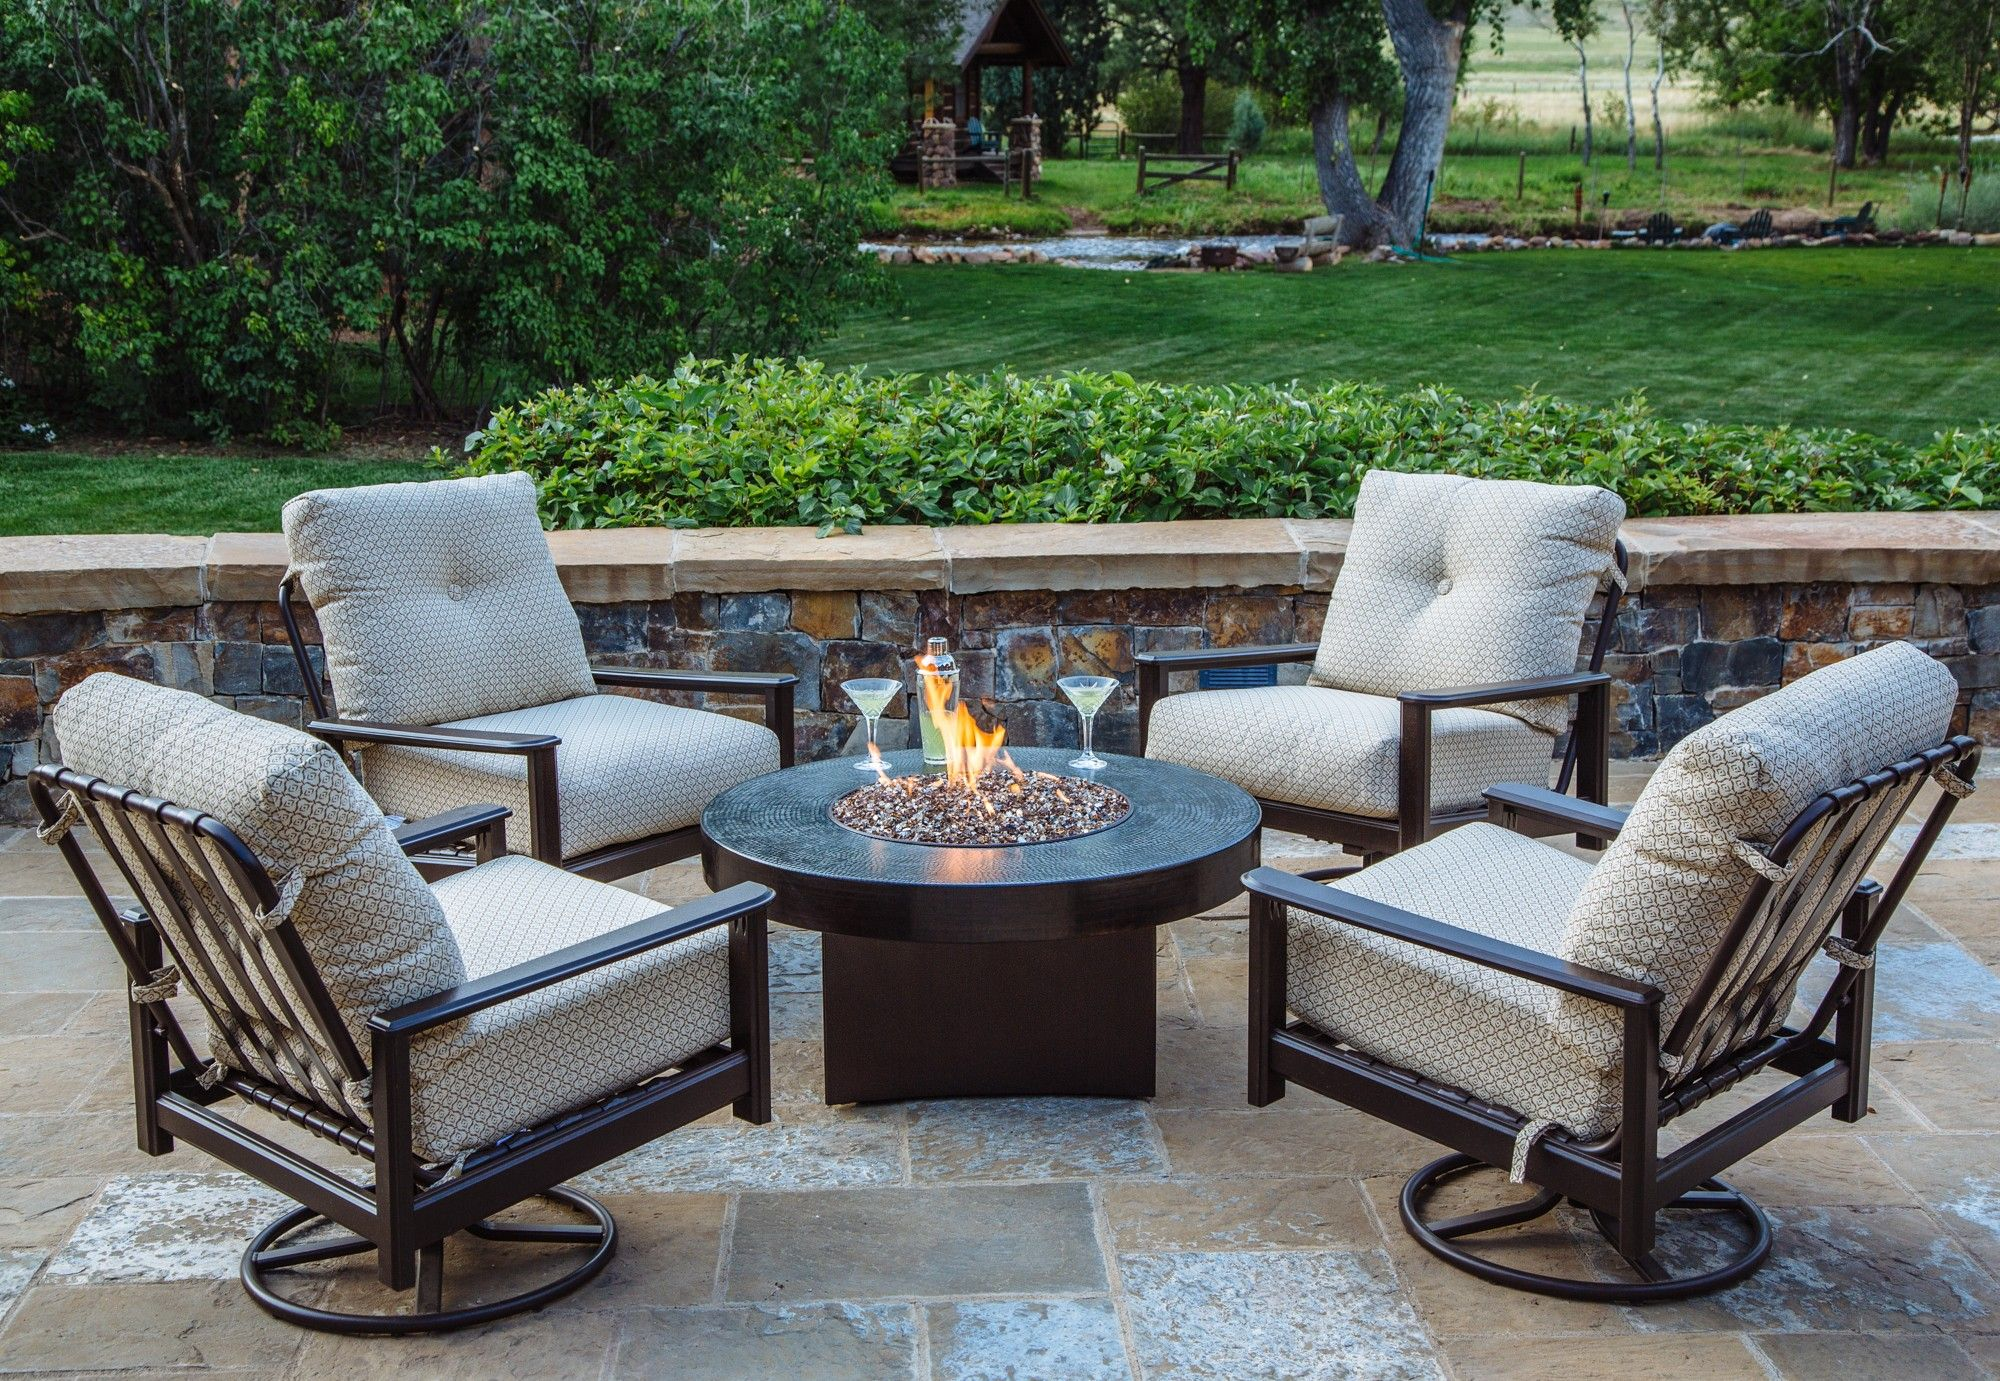 Oriflamme Gas Fire Pit Table Hammered Copper Somber | Fire ...